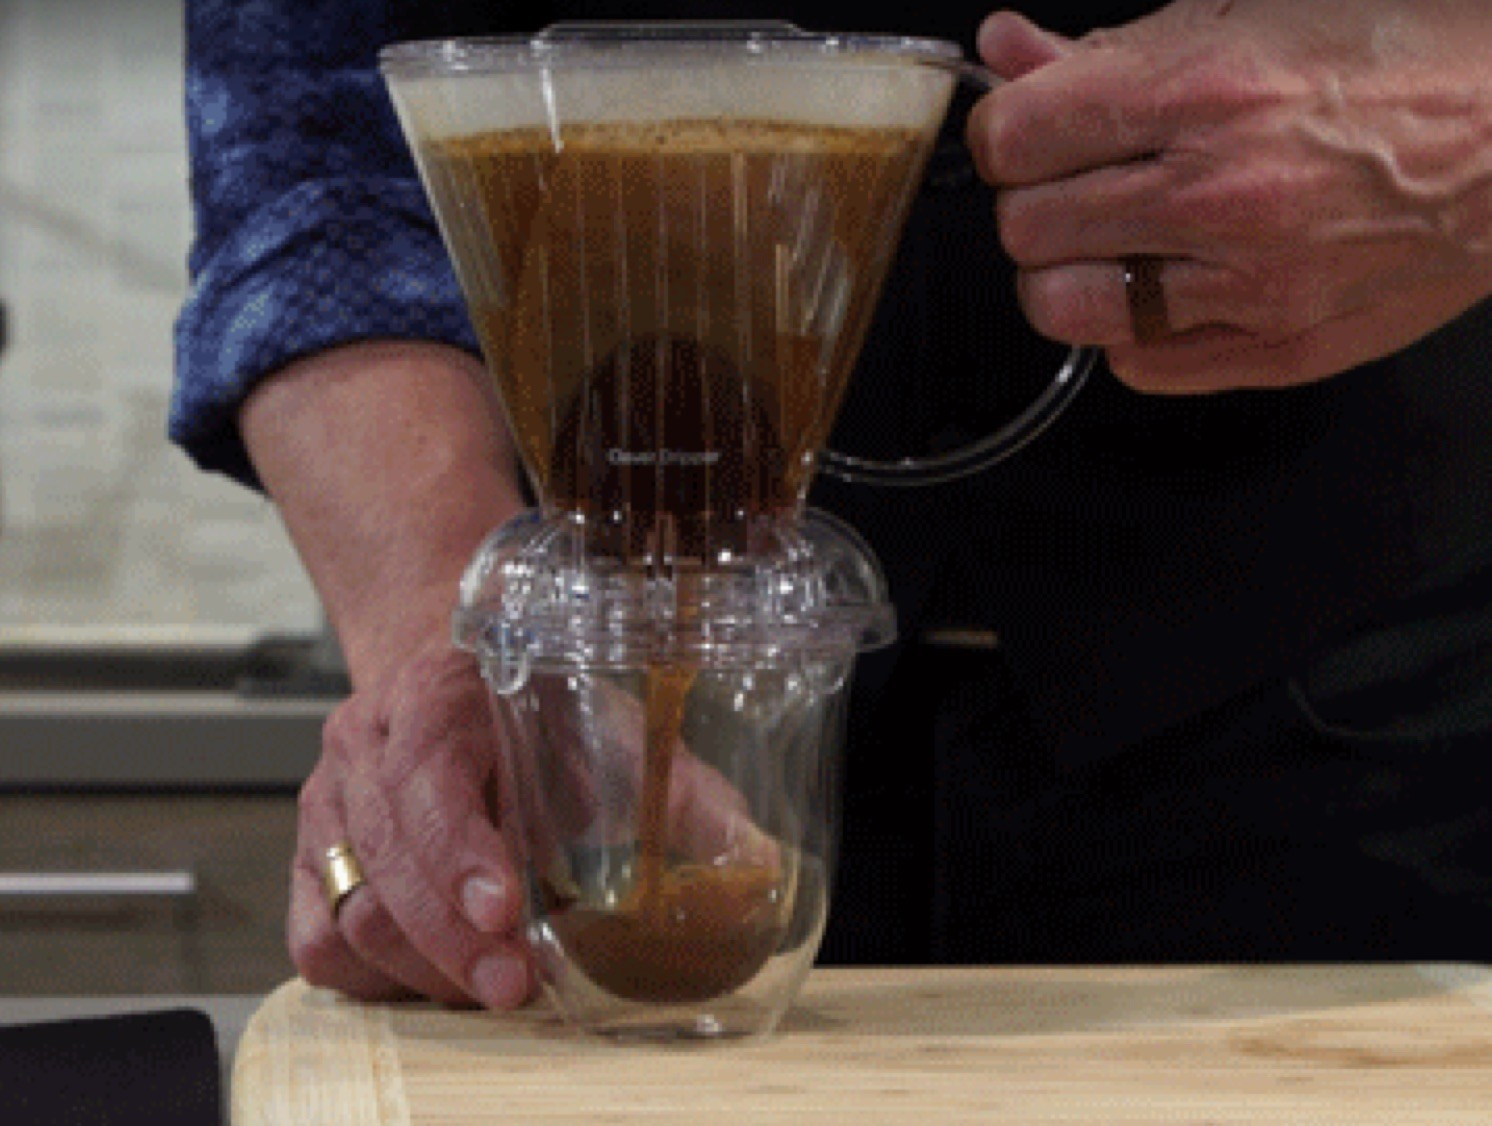 How to brew better coffee at home in 5 easy steps